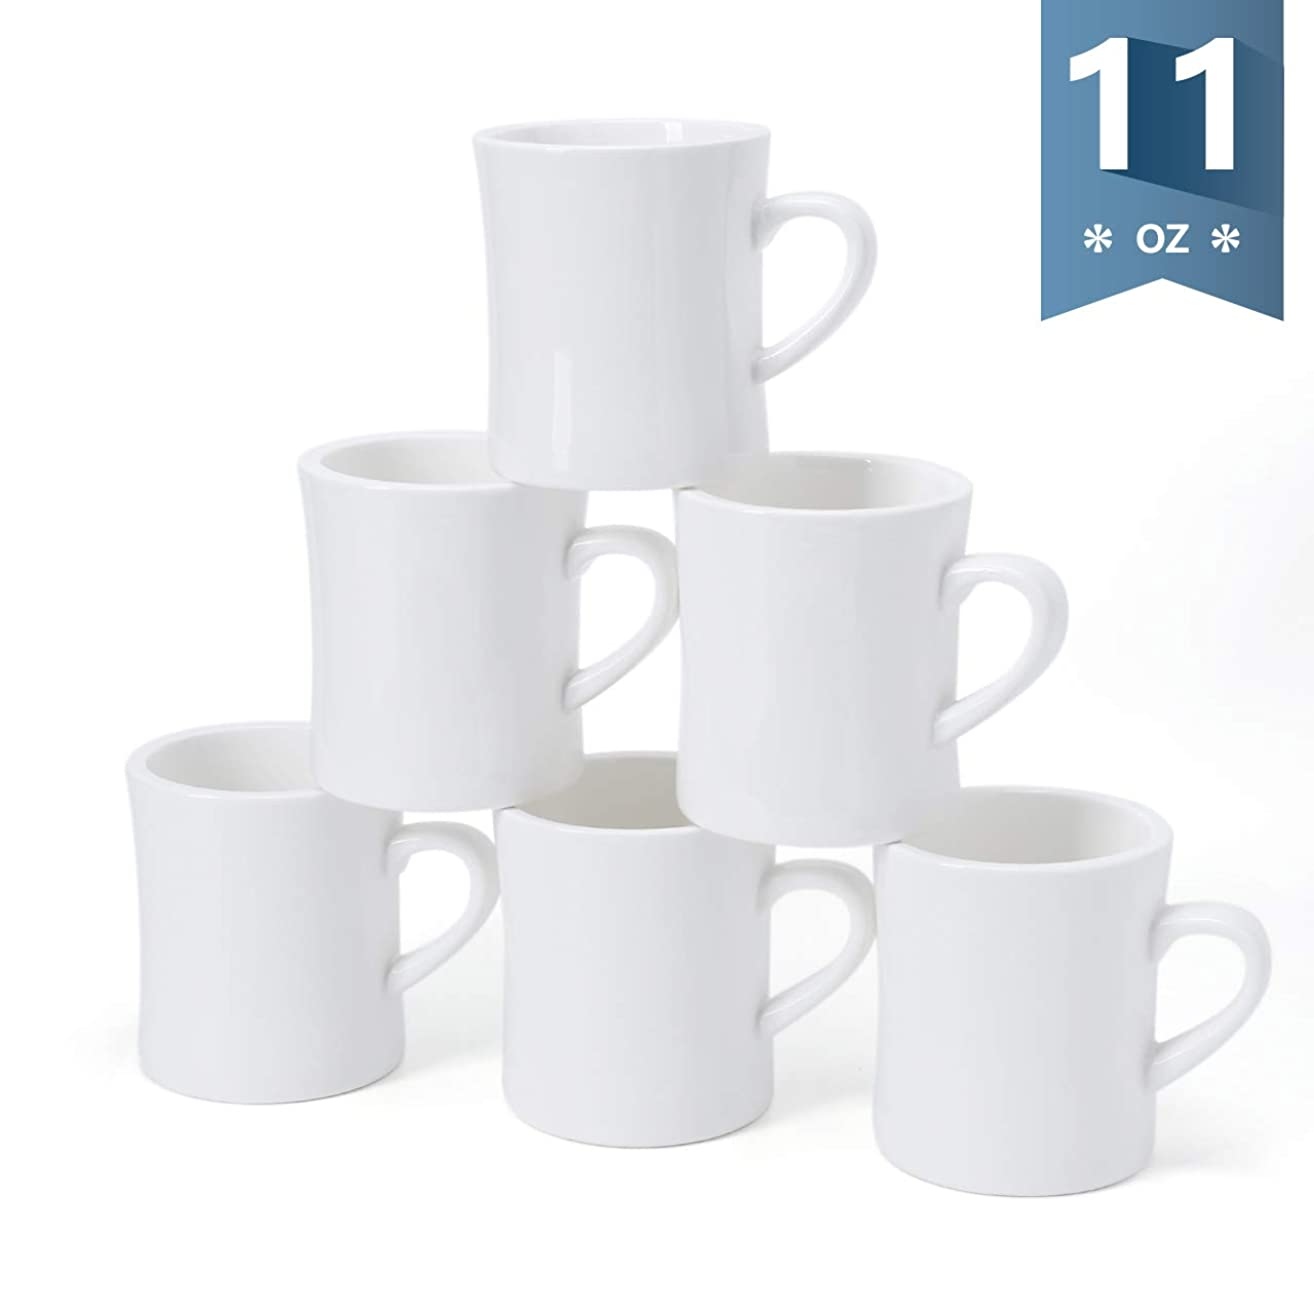 Sweese 6221 Porcelain Diner Mug Set - 11 Ounce for Coffee, Tea - Set of 6, White